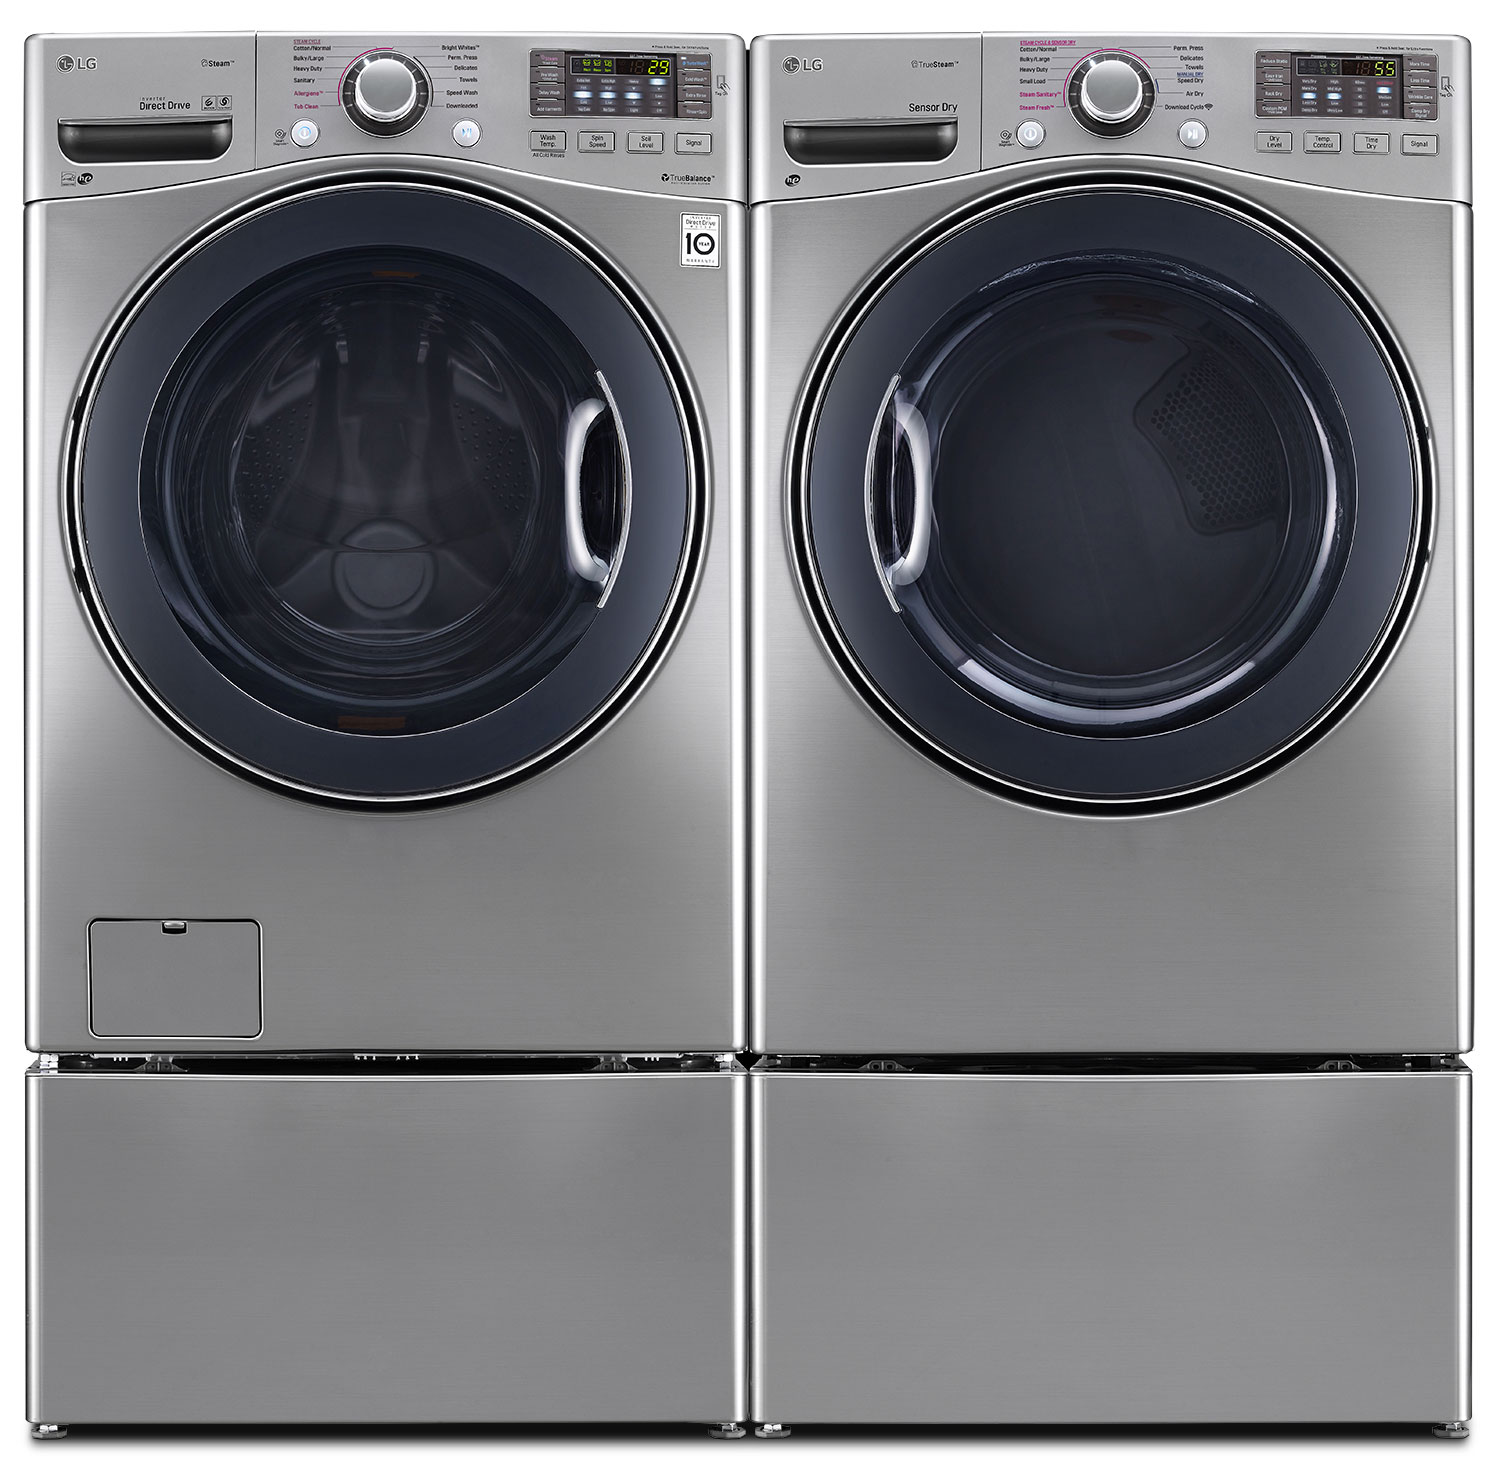 LG TWIN Wash™ 5.2 Cu. Ft. Washer, 7.4 Cu. Ft. Electric Dryer, Pedestal Washer and Storage Pedestal